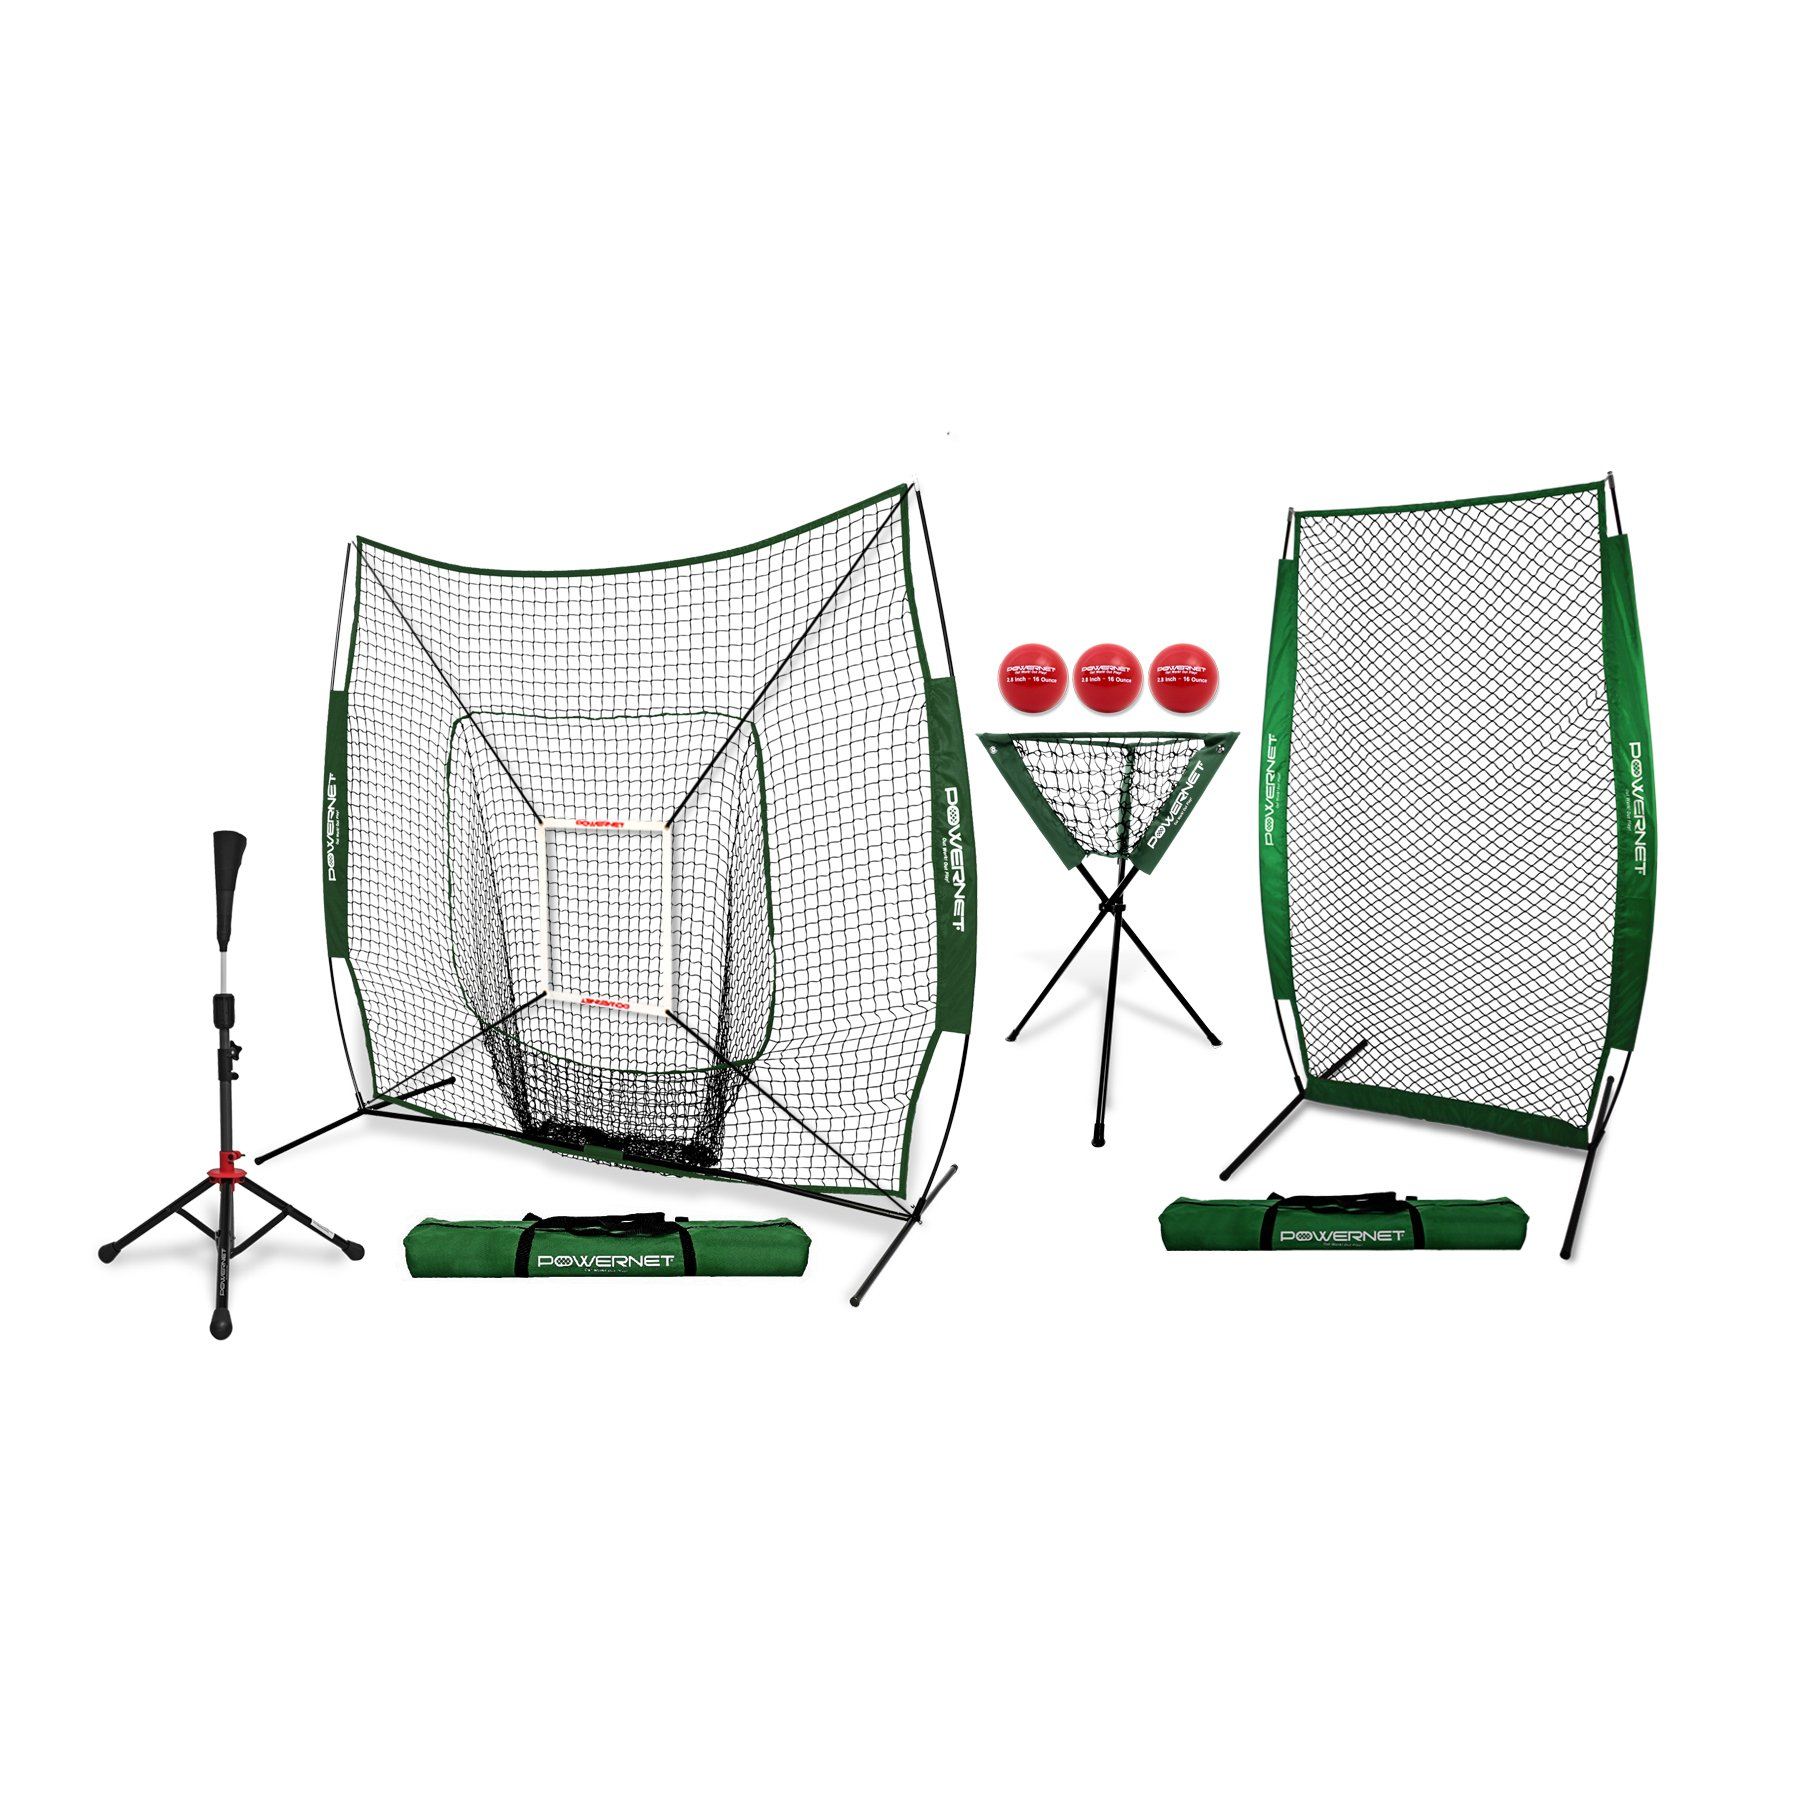 PowerNet [All in ONE Coach Bundle (Green) 7x7 DLX Practice Net + I-Screen + Deluxe Tee + Ball Caddy + 3 Pack Weighted Training Ball + Strike Zone Bundle | Baseball Softball Pitching Batting by PowerNet